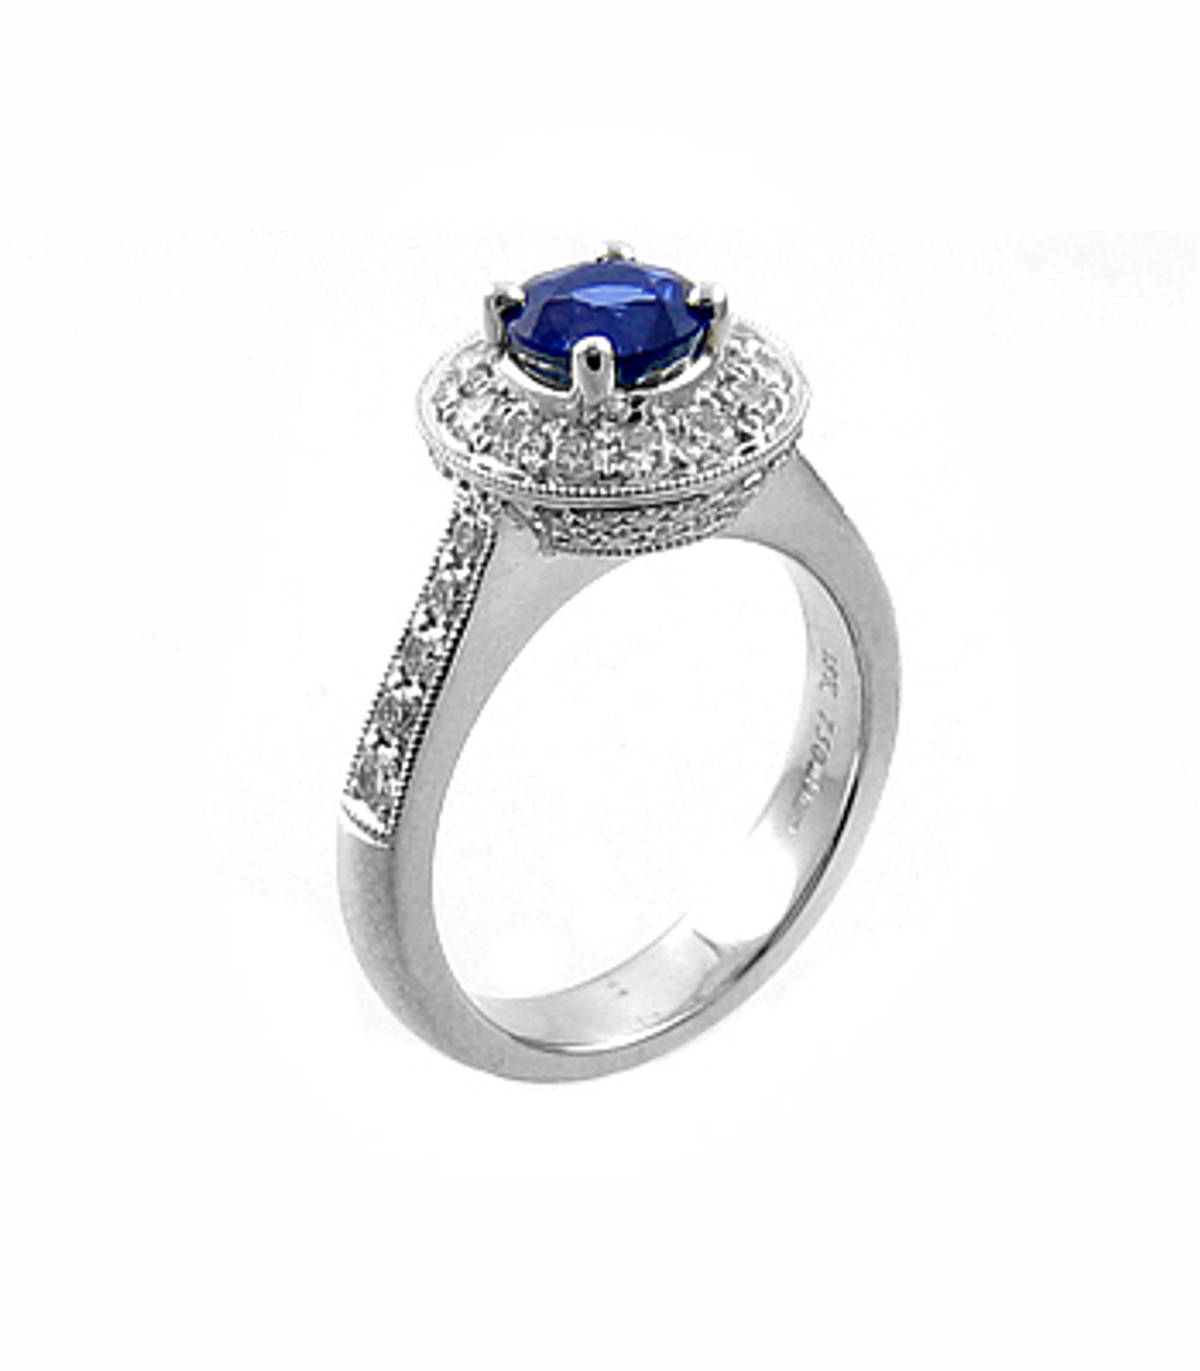 Sapphire and diamond cluster ringPictured item: sapphire: total 1.02ct/diamonds: total 0.77ct set in 18k white gold